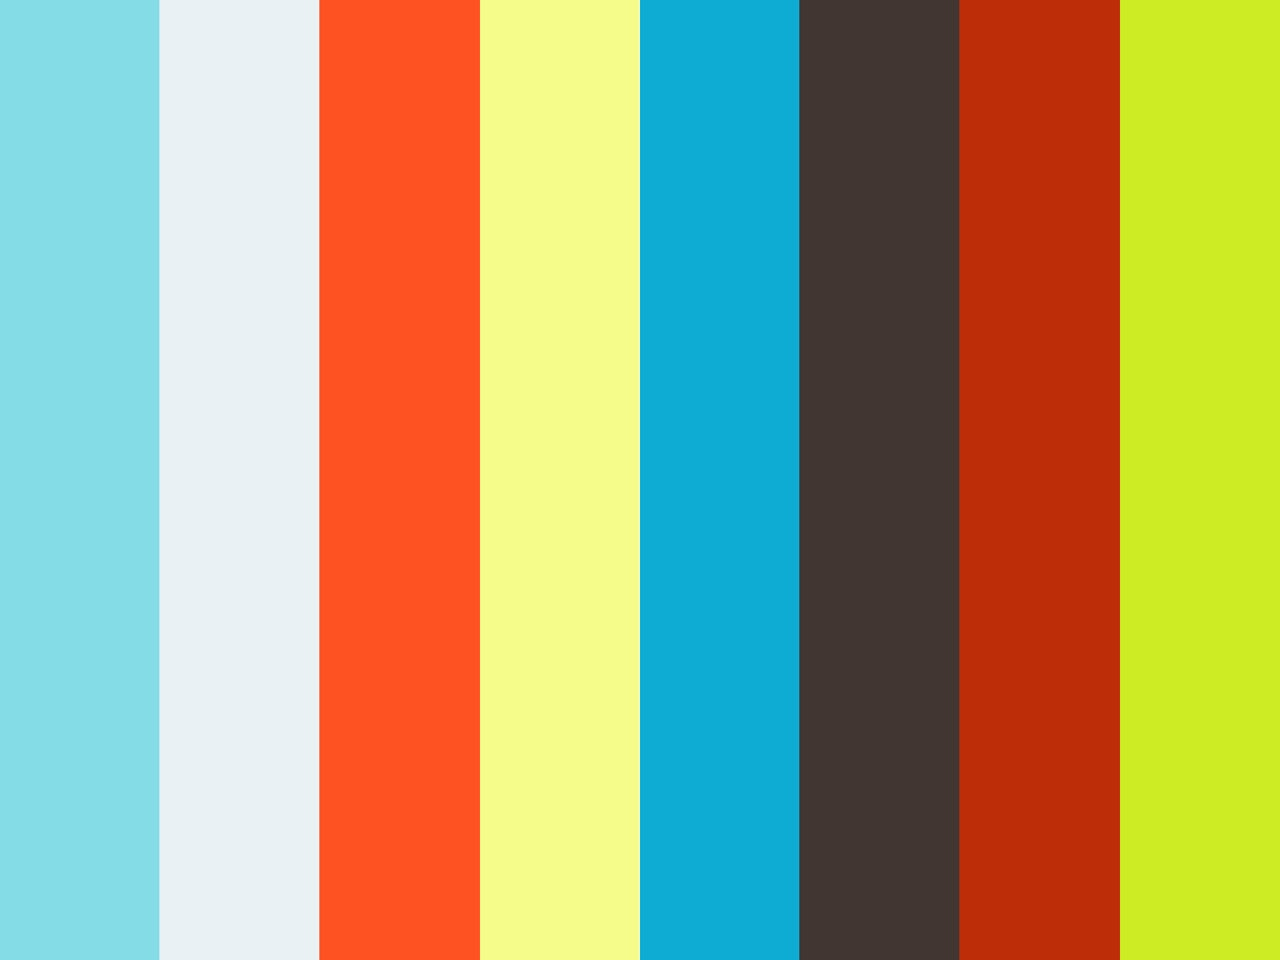 Session 4: Reaching Is Not For The Lone Ranger